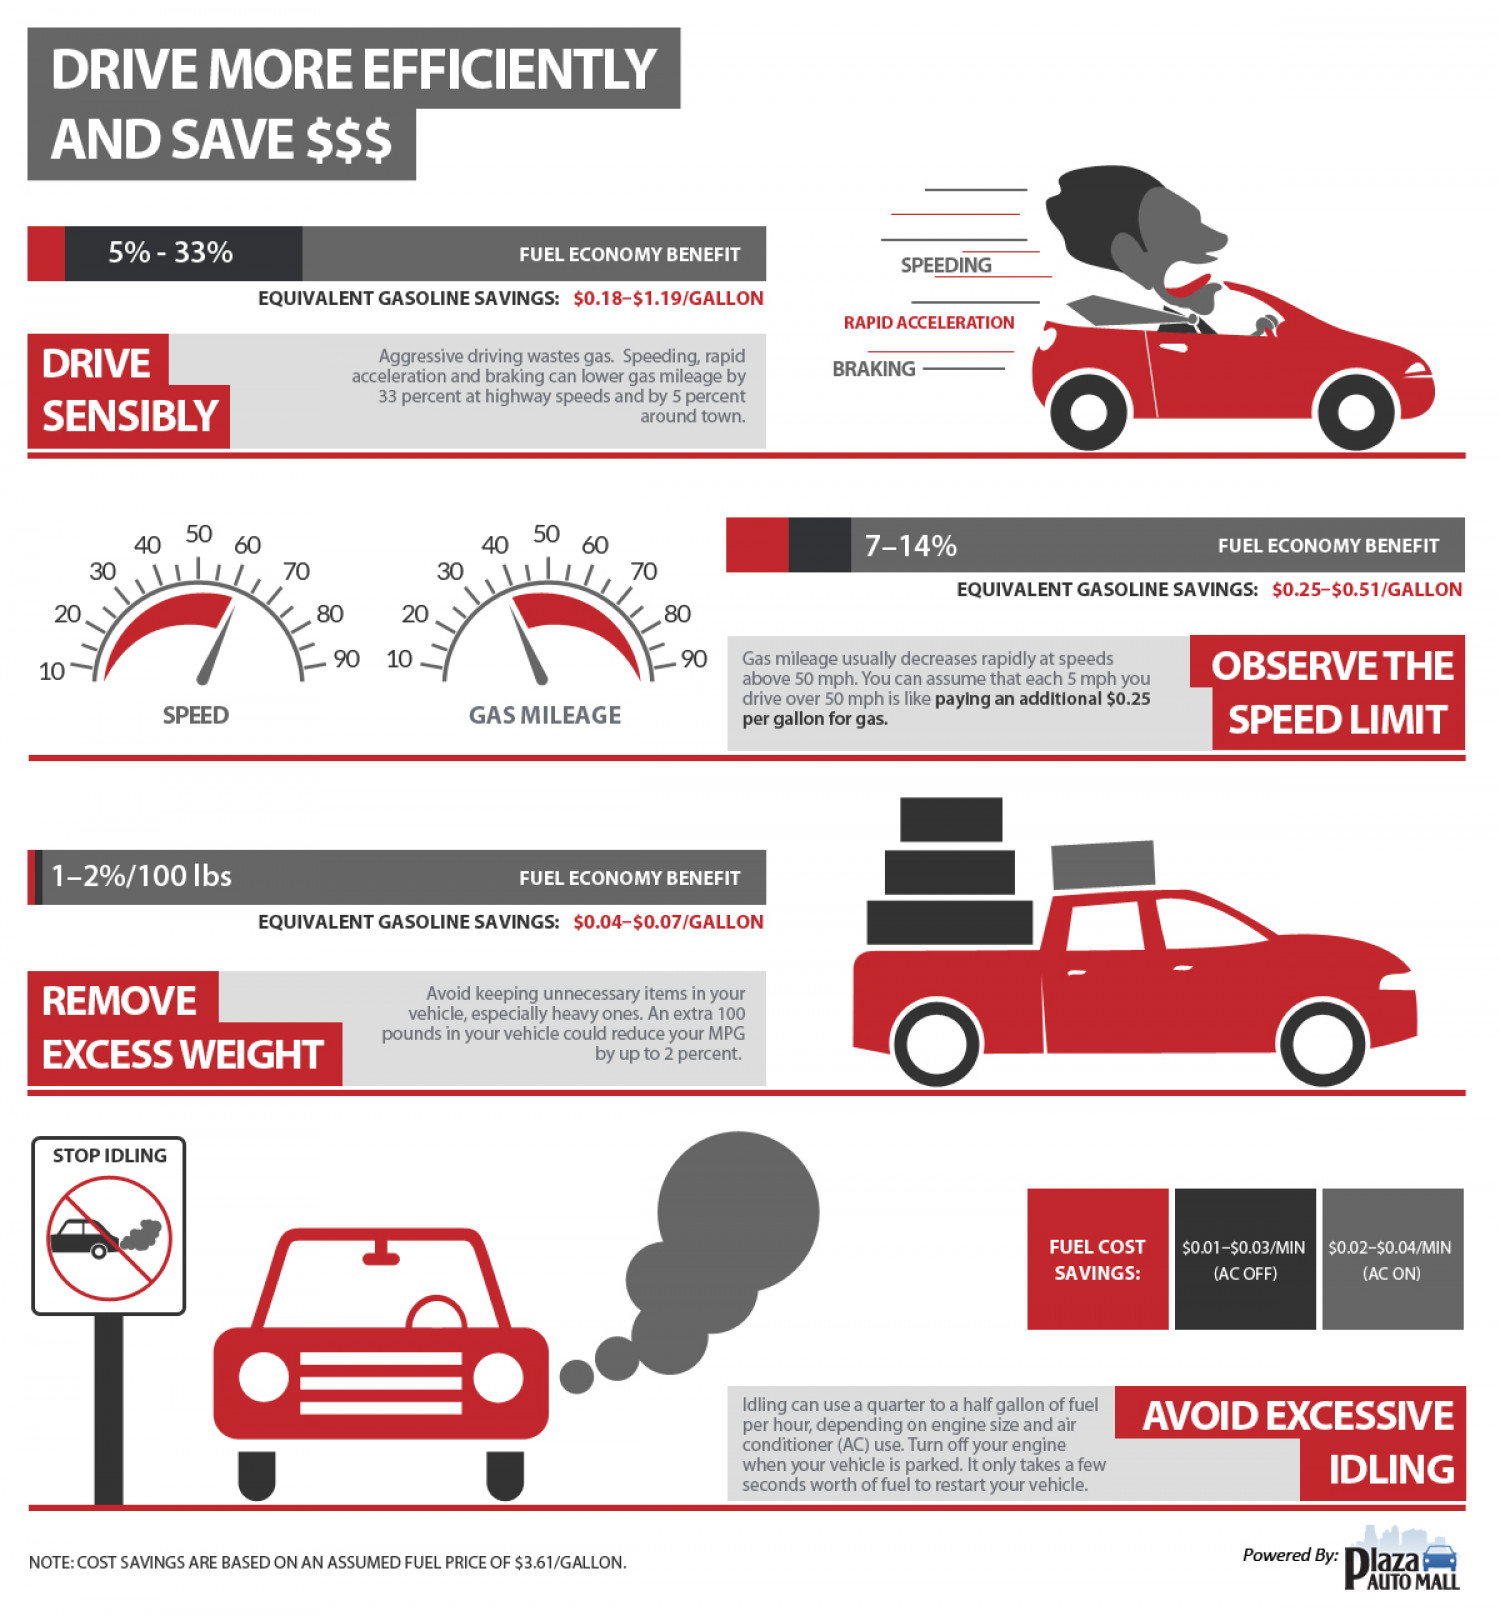 Plaza Toyota: How to Drive Efficiently in New York Infographic